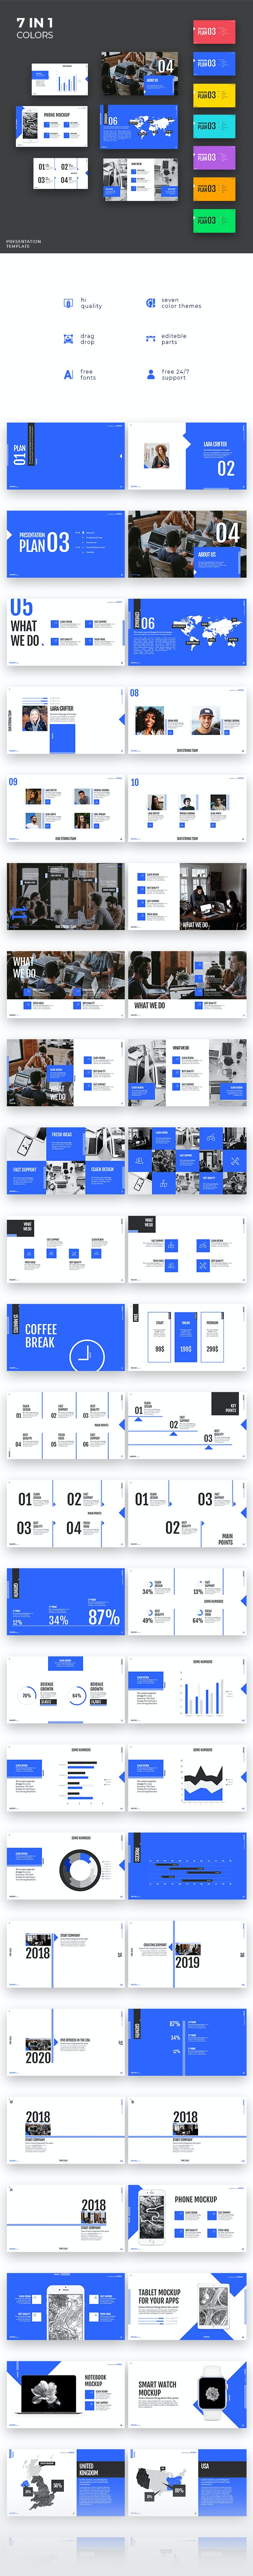 7 in 1 - My Project Pro - Powerpoint Template - Business PowerPoint Templates